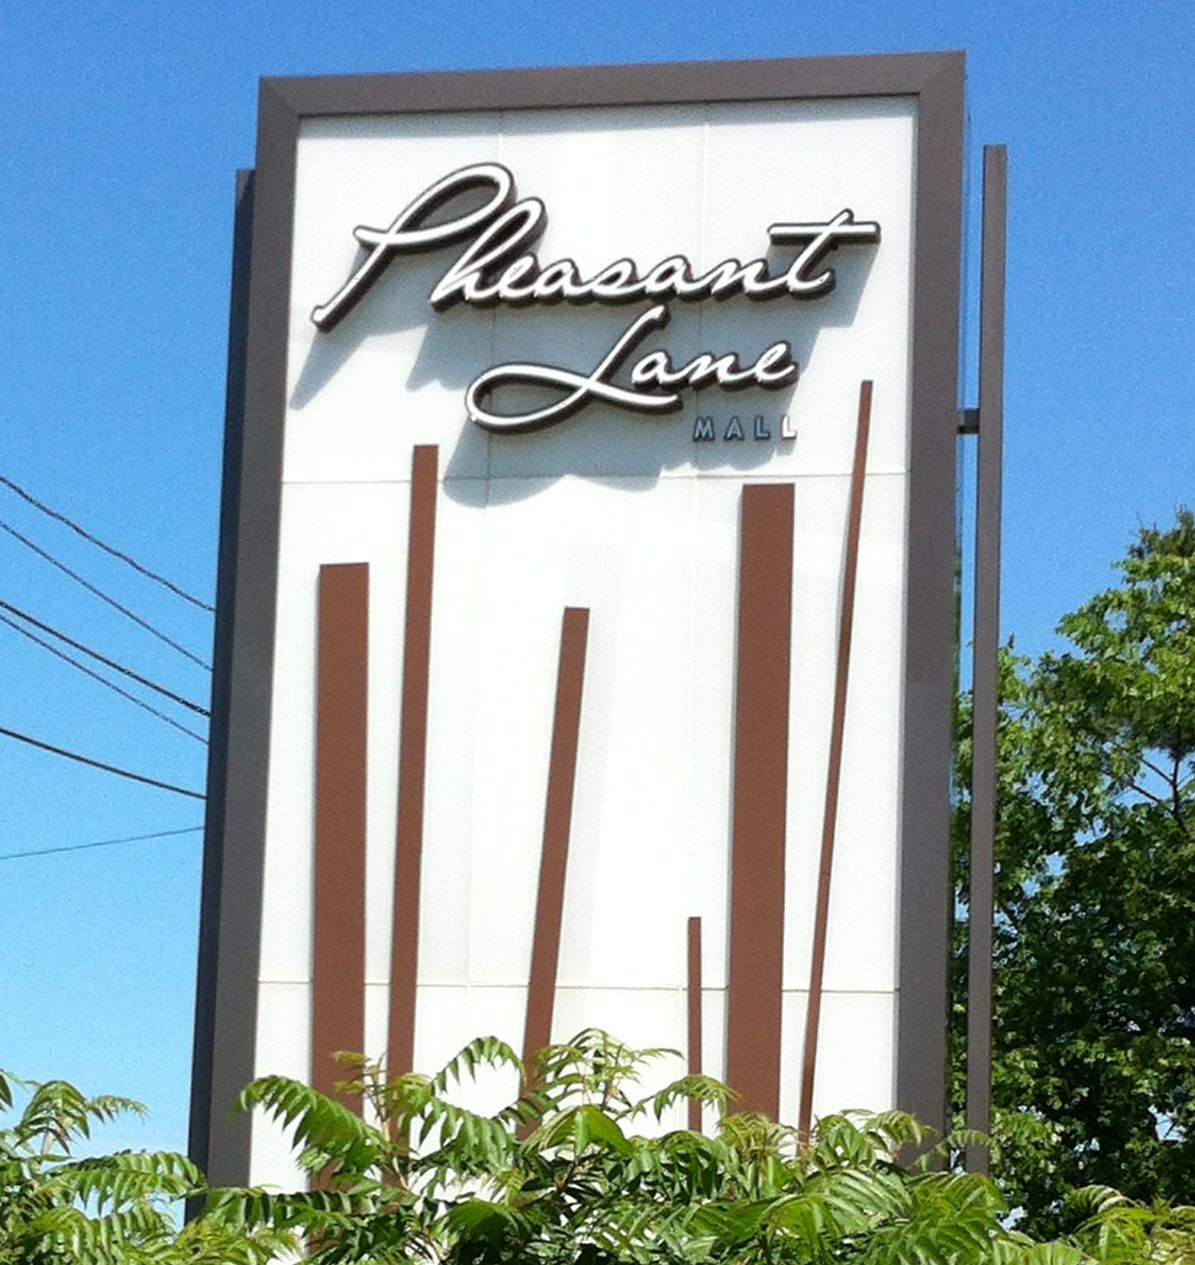 This is the new logo/sign for the Pheasant Lane Mall in Nashua, NH (awesome vintage!)